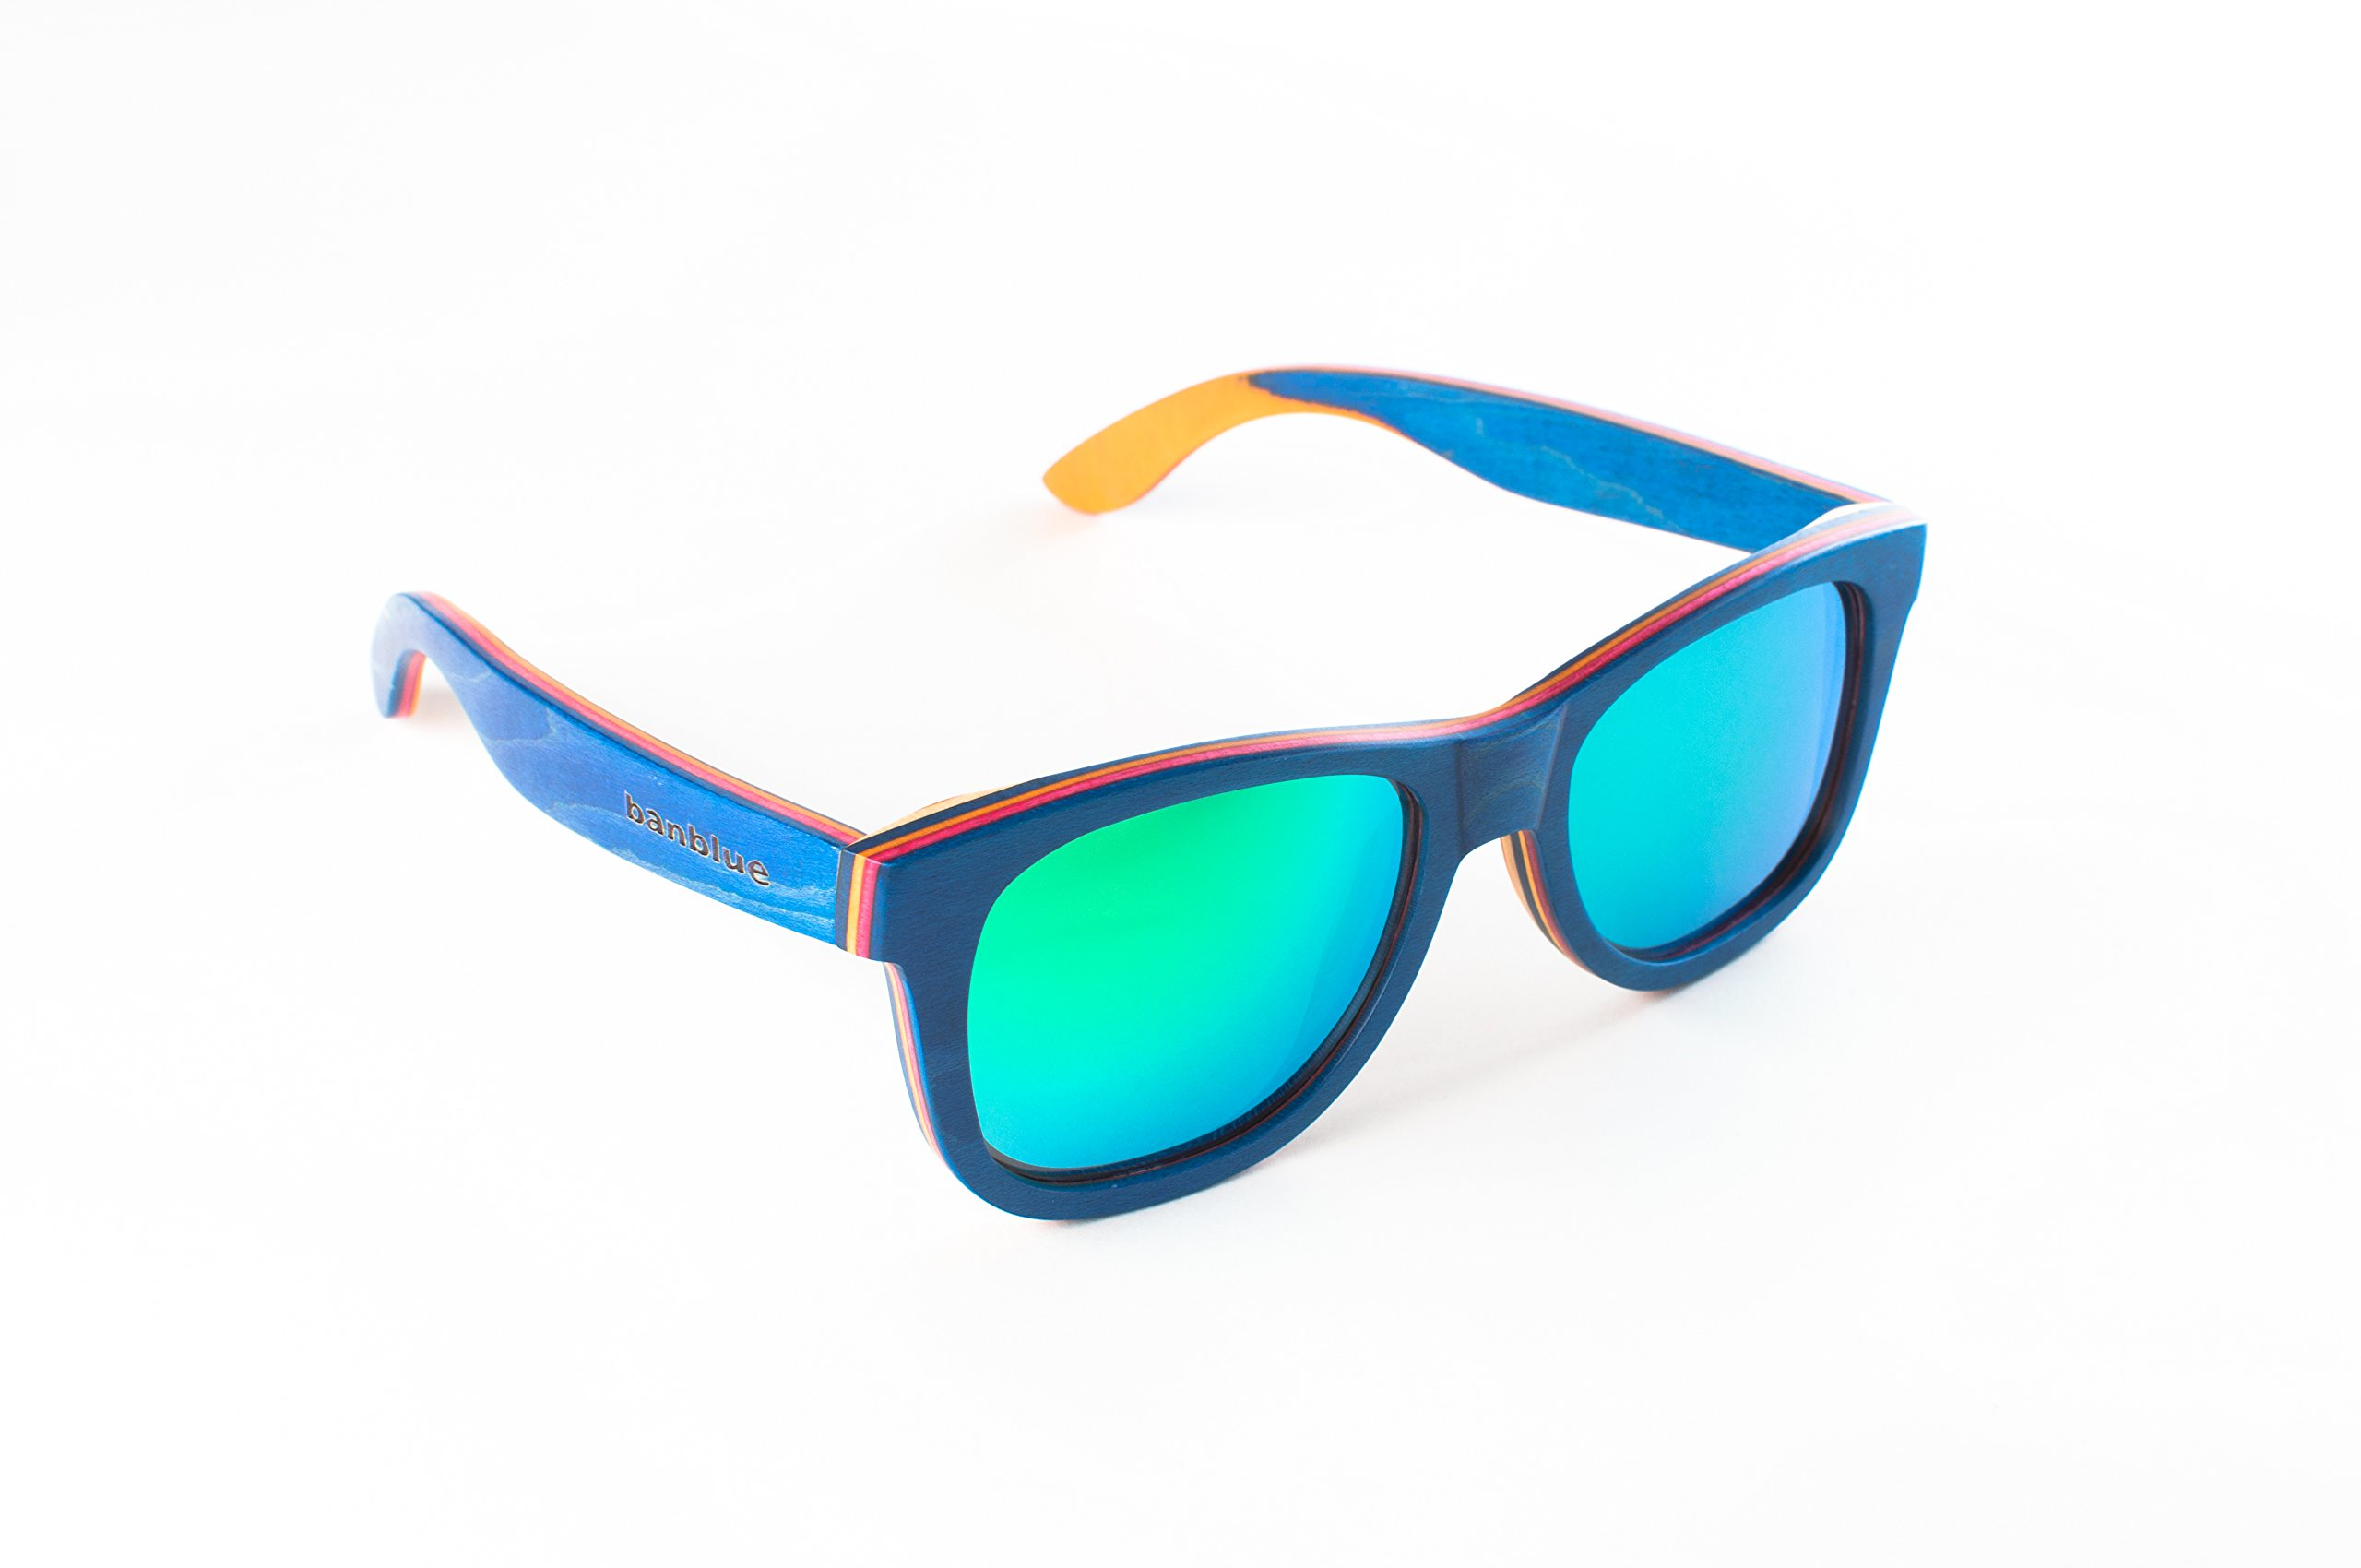 banblue Wooden Sunglasses Inspired by Skateboard (Blue, Green)